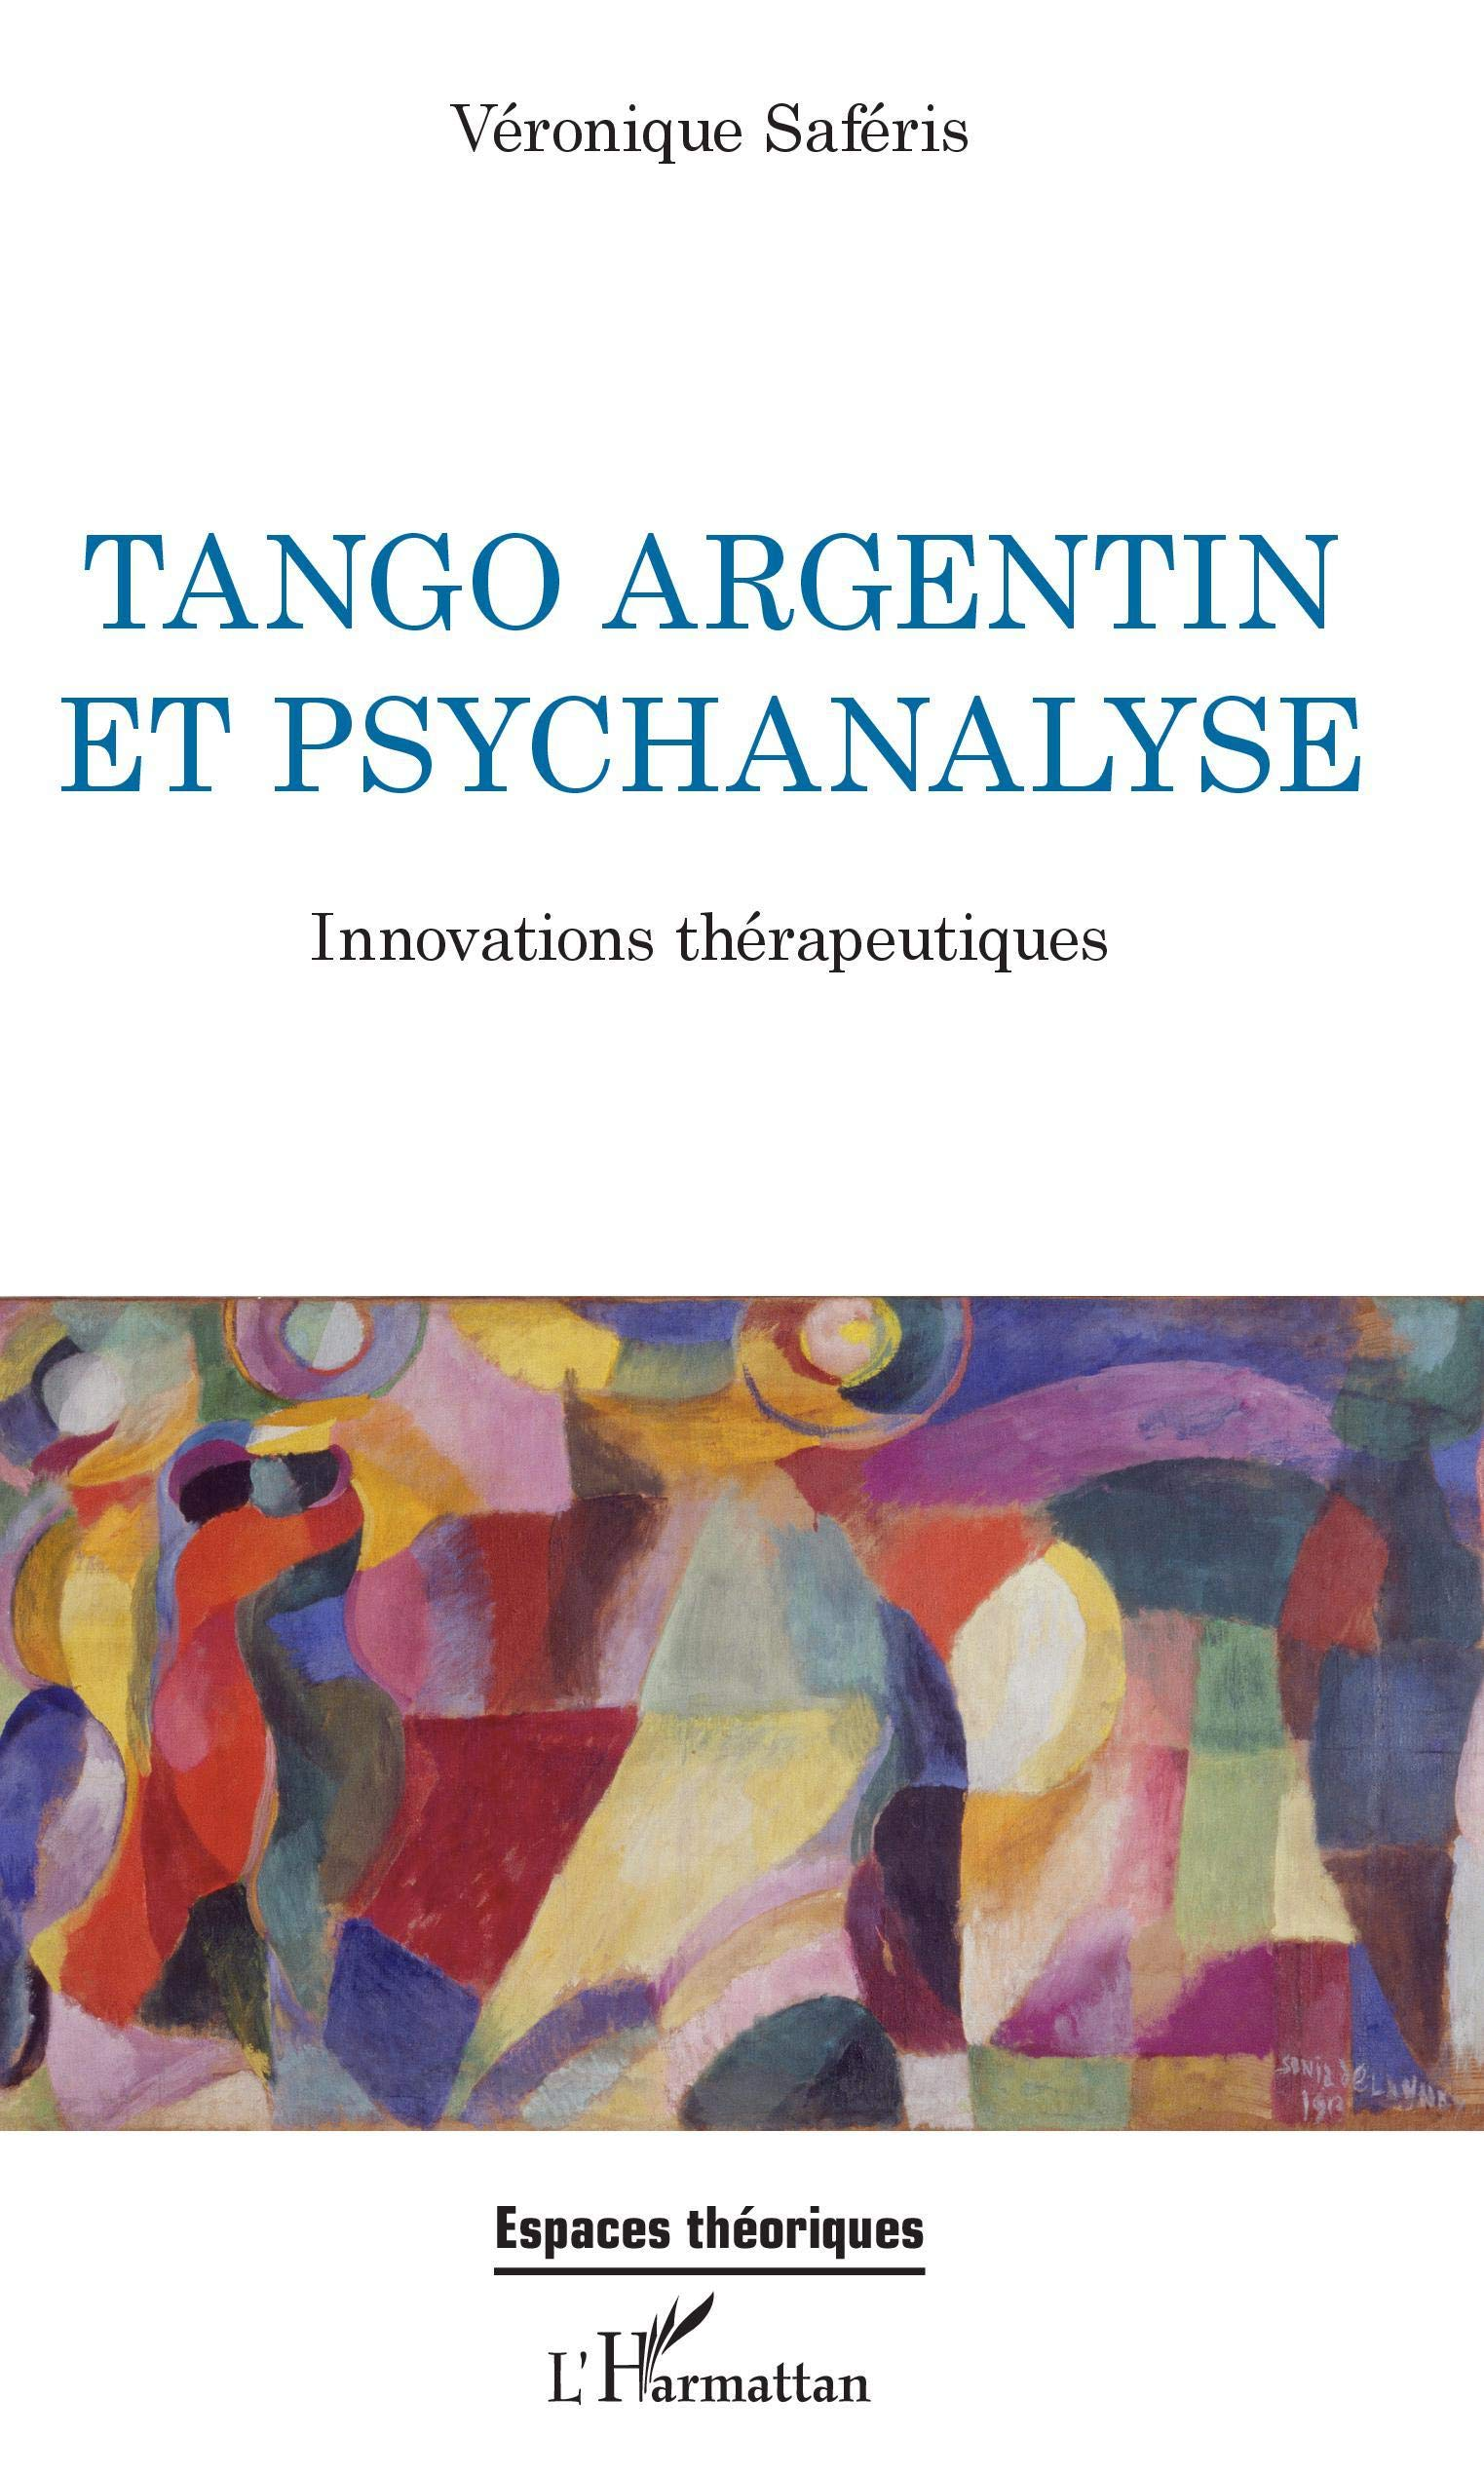 Tango argentin et psychanalyse. Innovations thérapeutiques